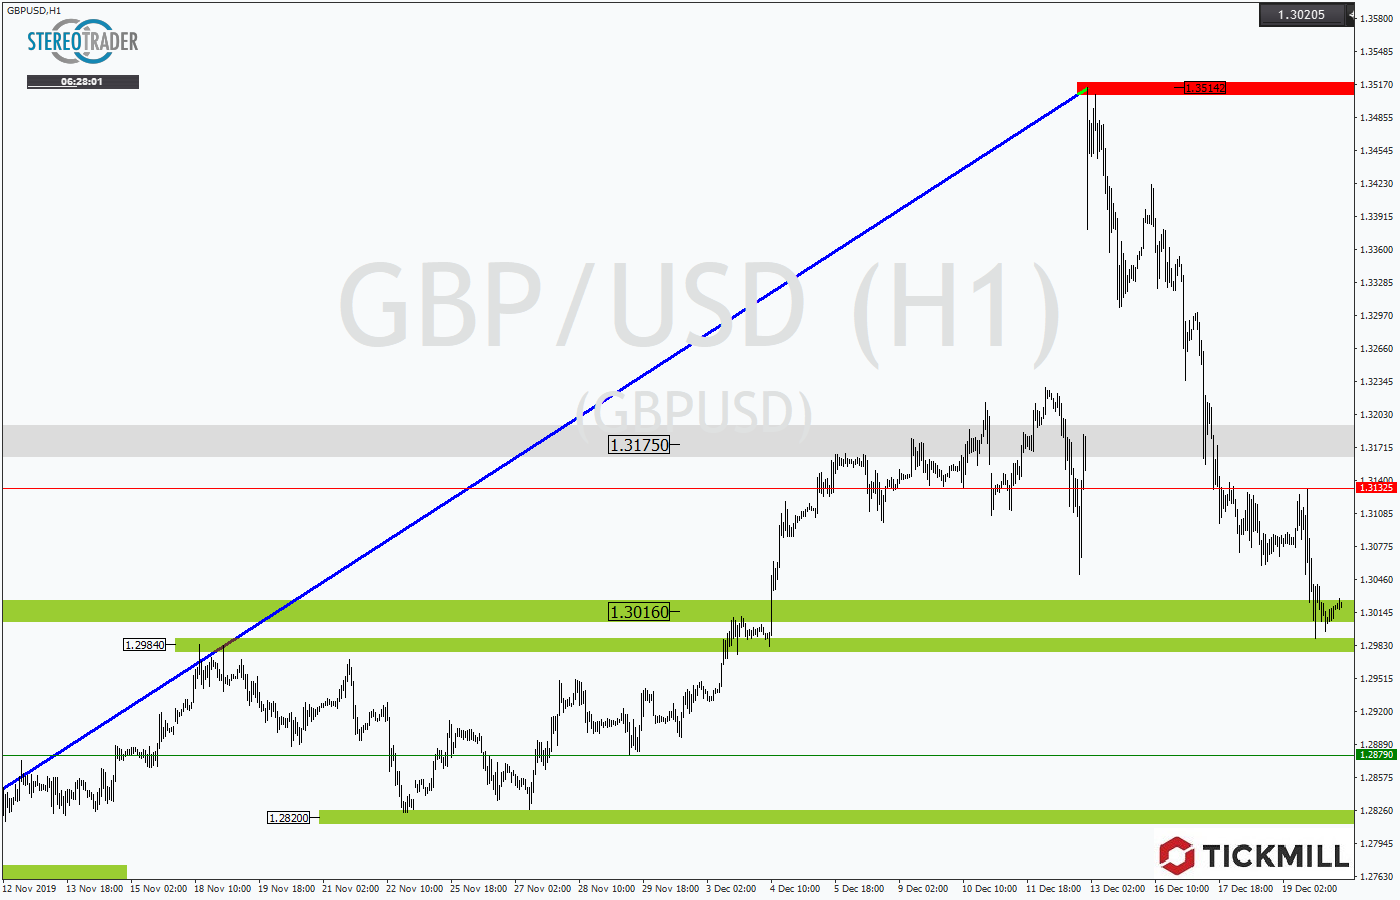 Tickmill-Analyse: GBPUSD am Support